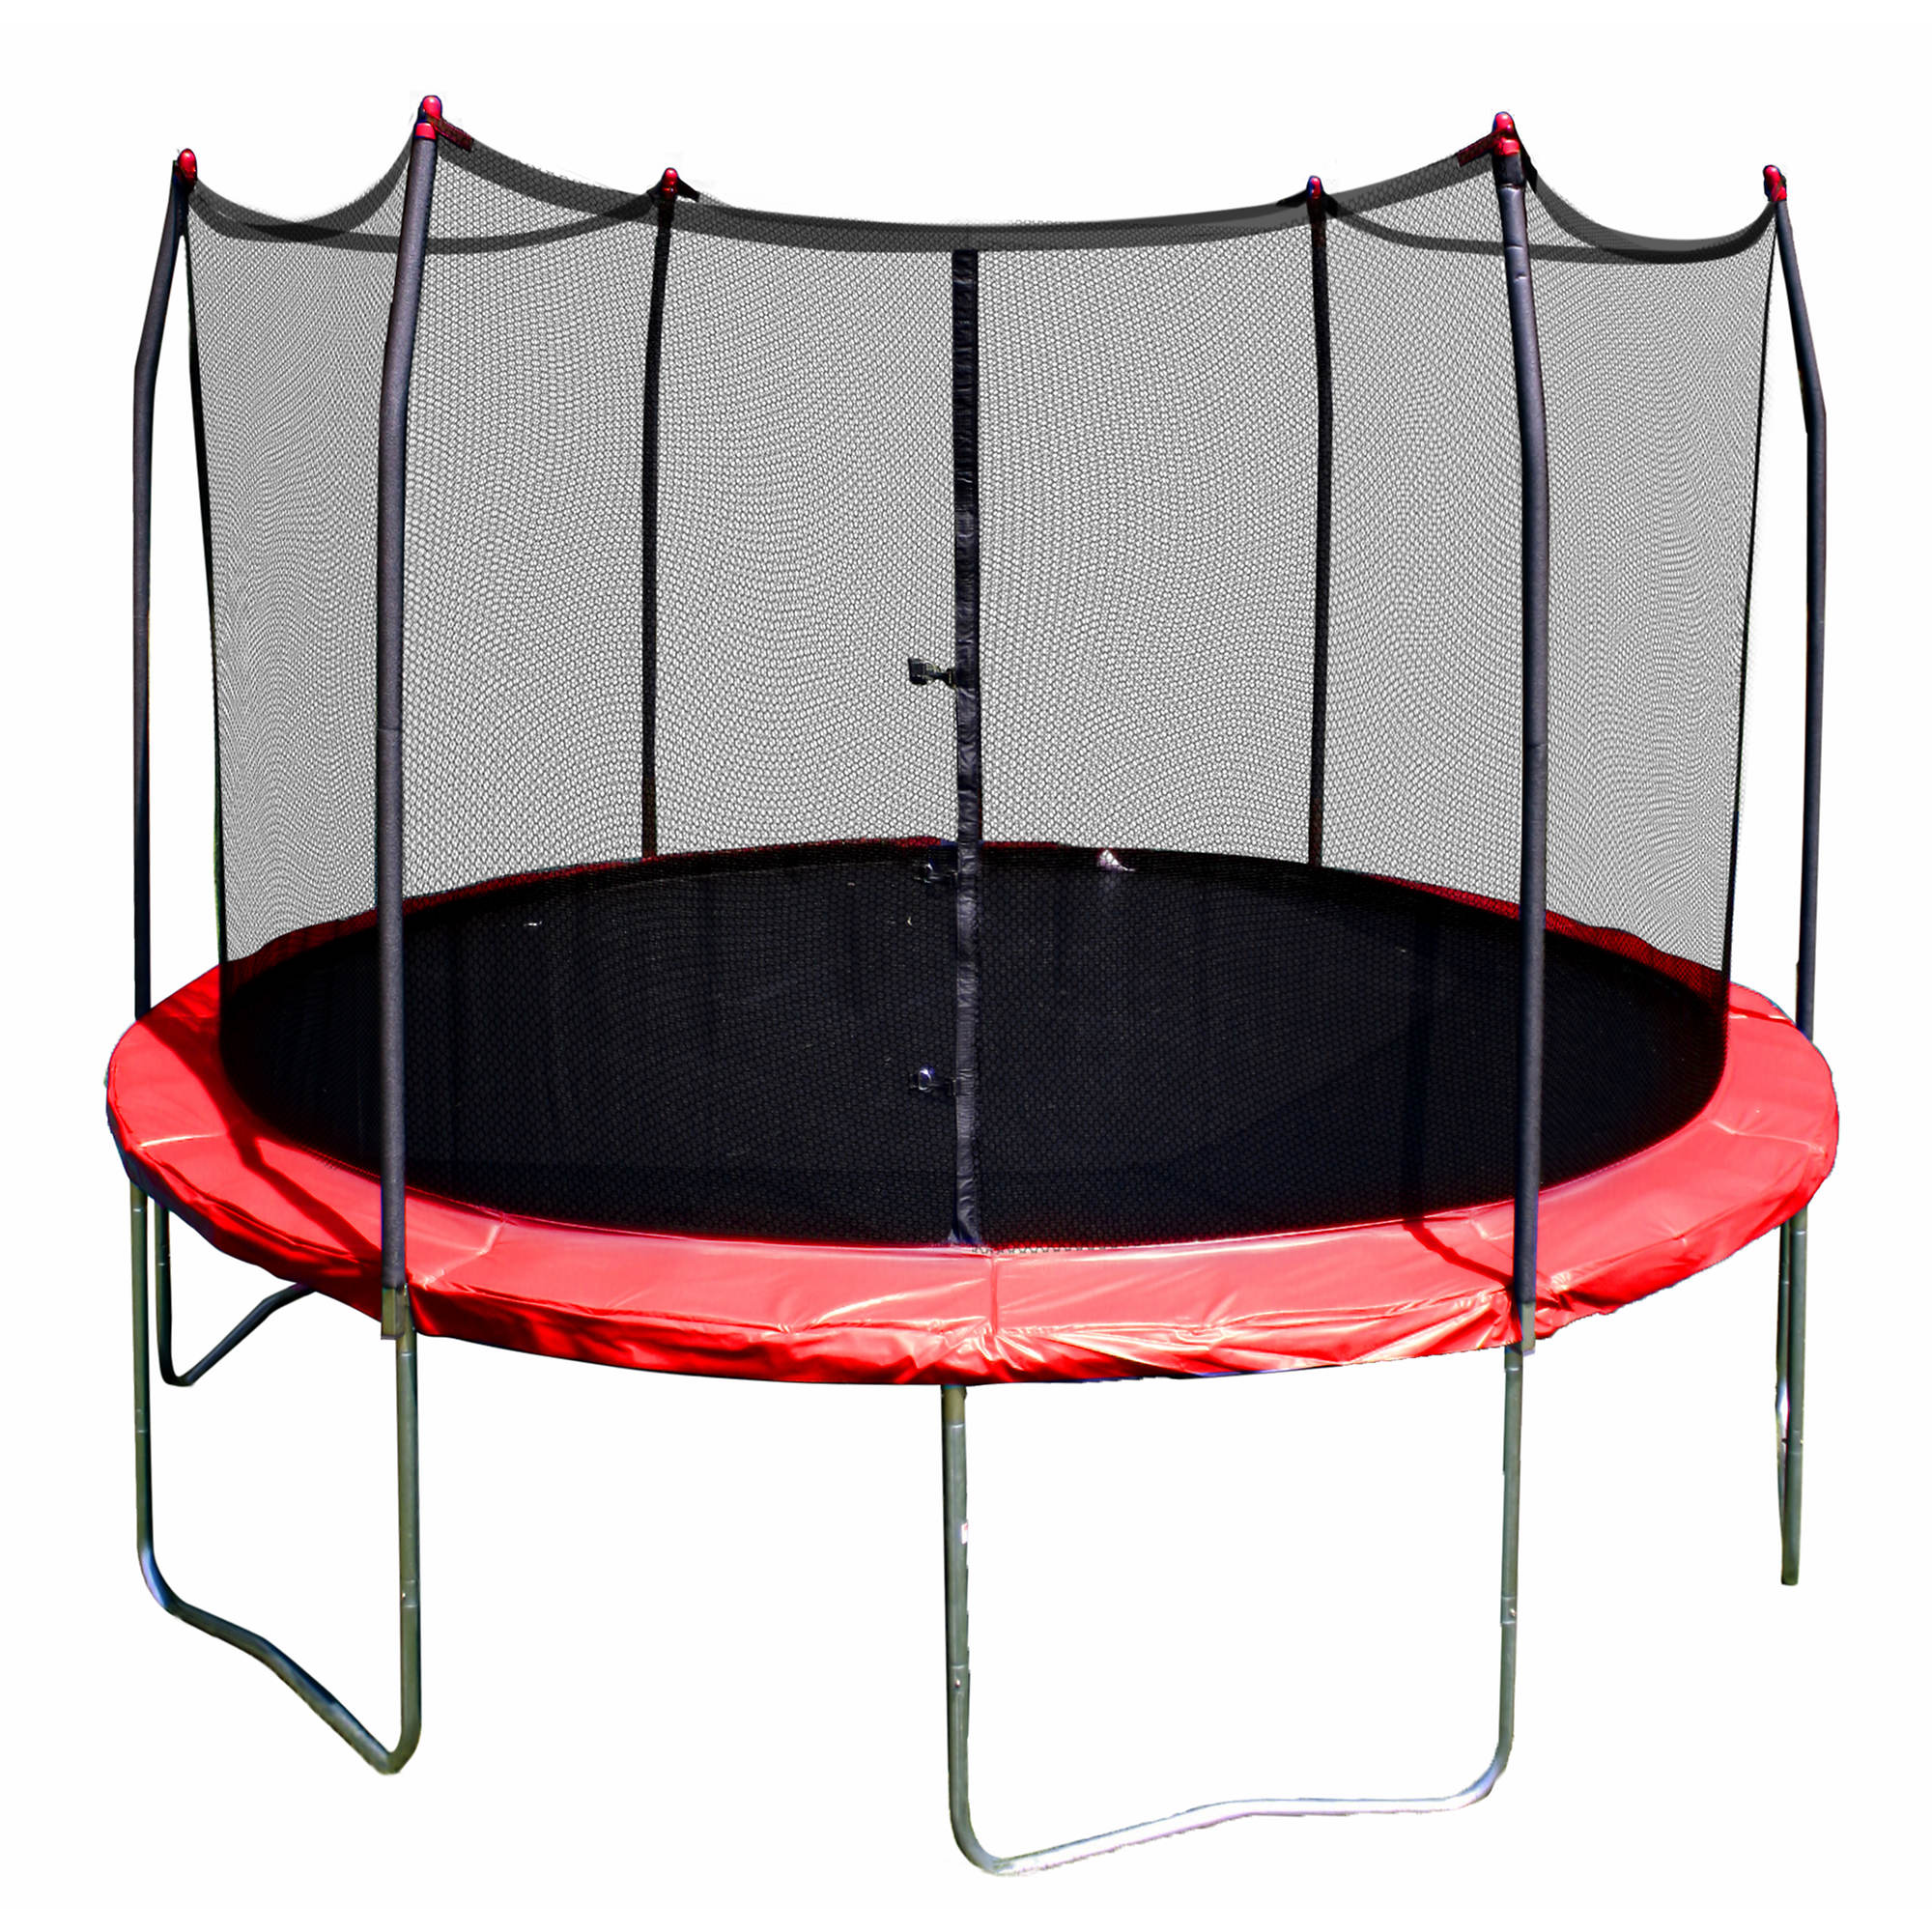 Skywalker Trampolines 17x15: Skywalker Trampolines 12' Round Trampoline With Enclosure